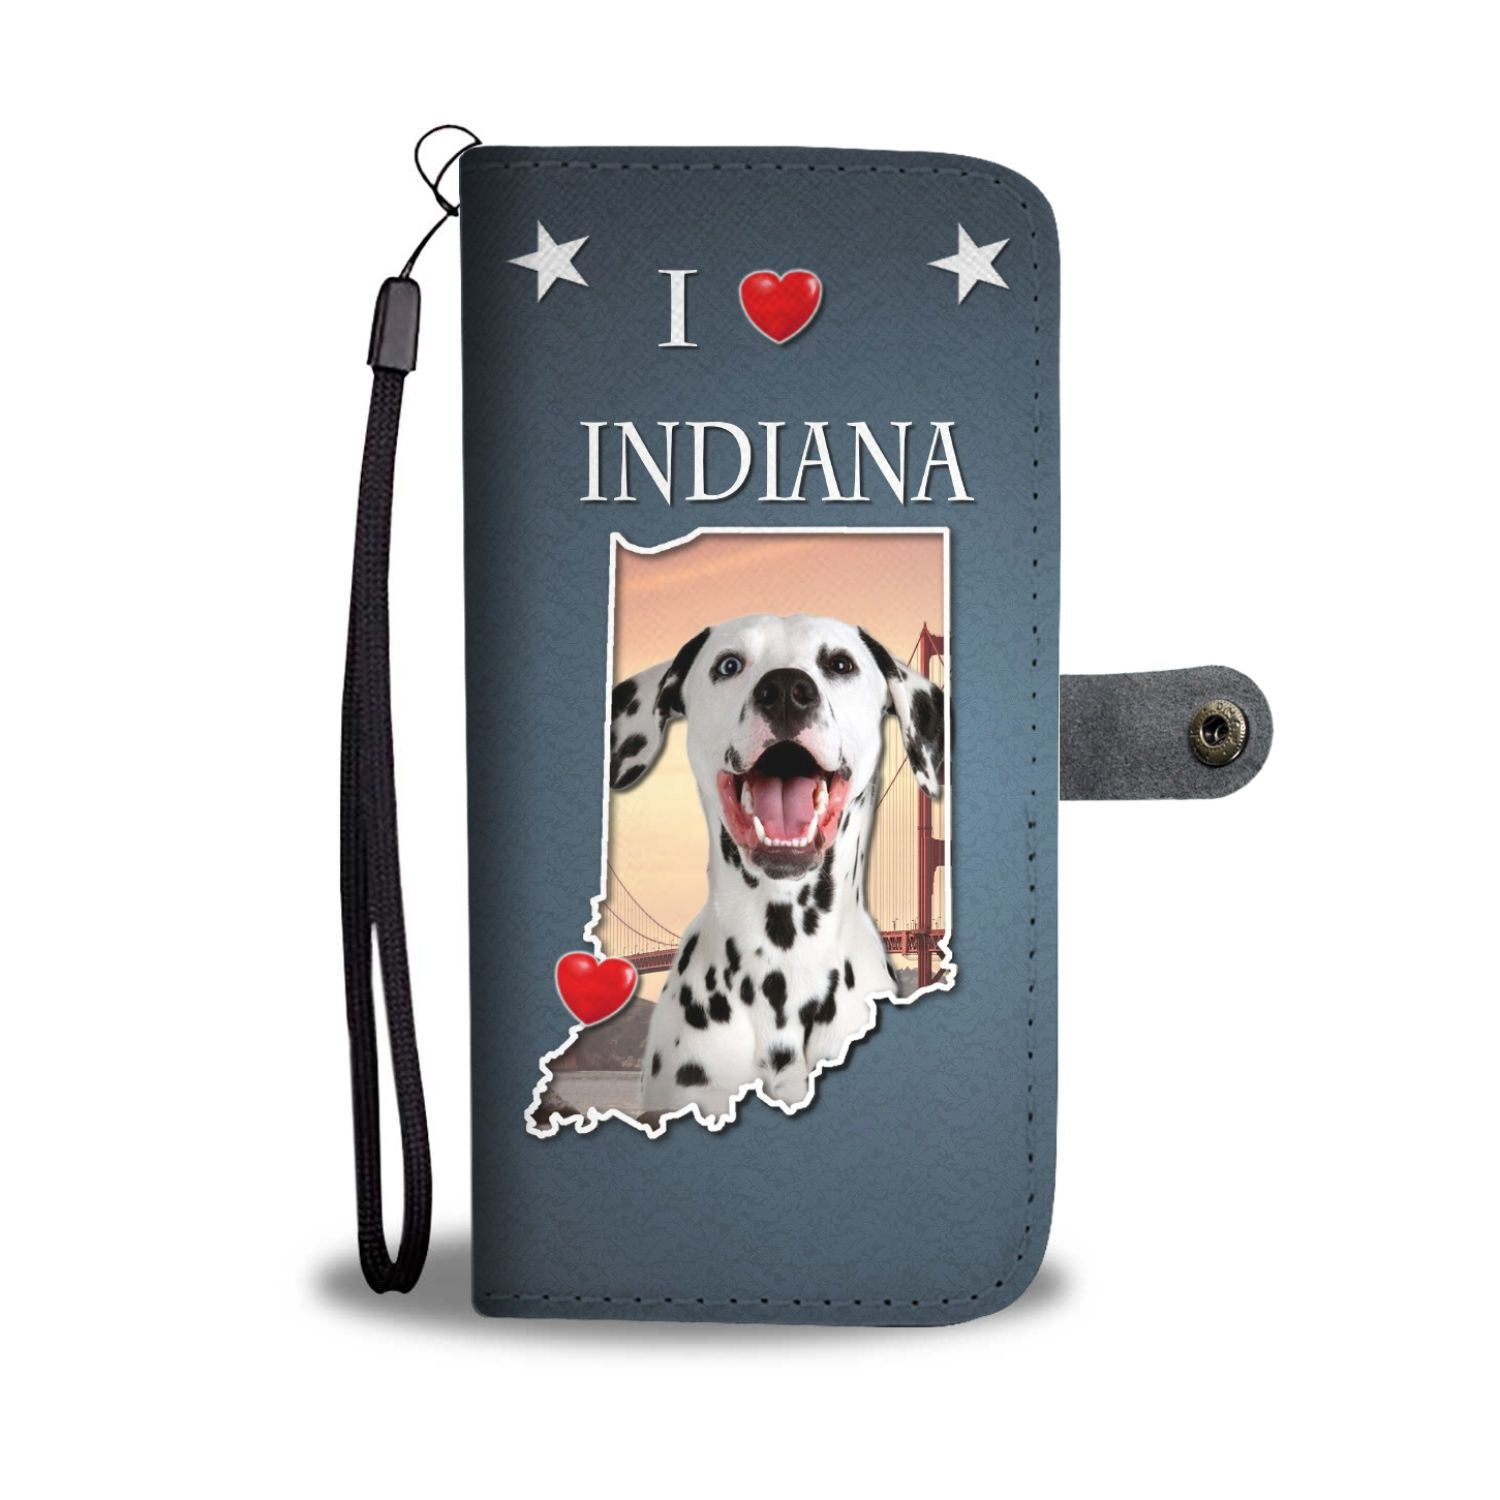 Cute Dalmatian Dog Print Wallet Case-Free Shipping-IN State - The Horse Barn